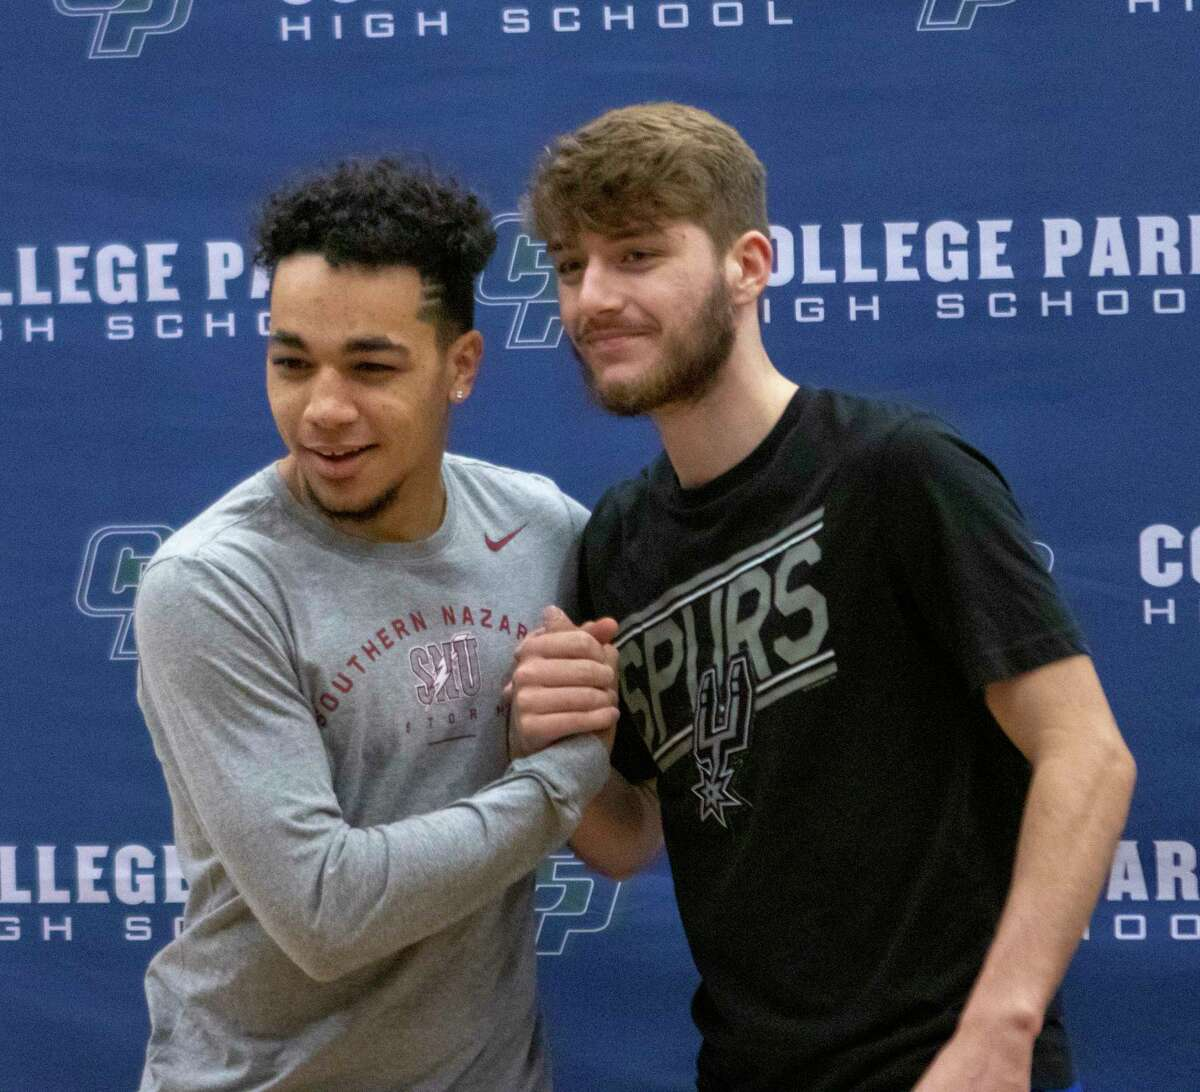 College Park senior Aaron Randle poses with a friend during National Signing Day on Wednesday, Jan. 6, 2019 at The Woodlands College Park High School in The Woodlands.